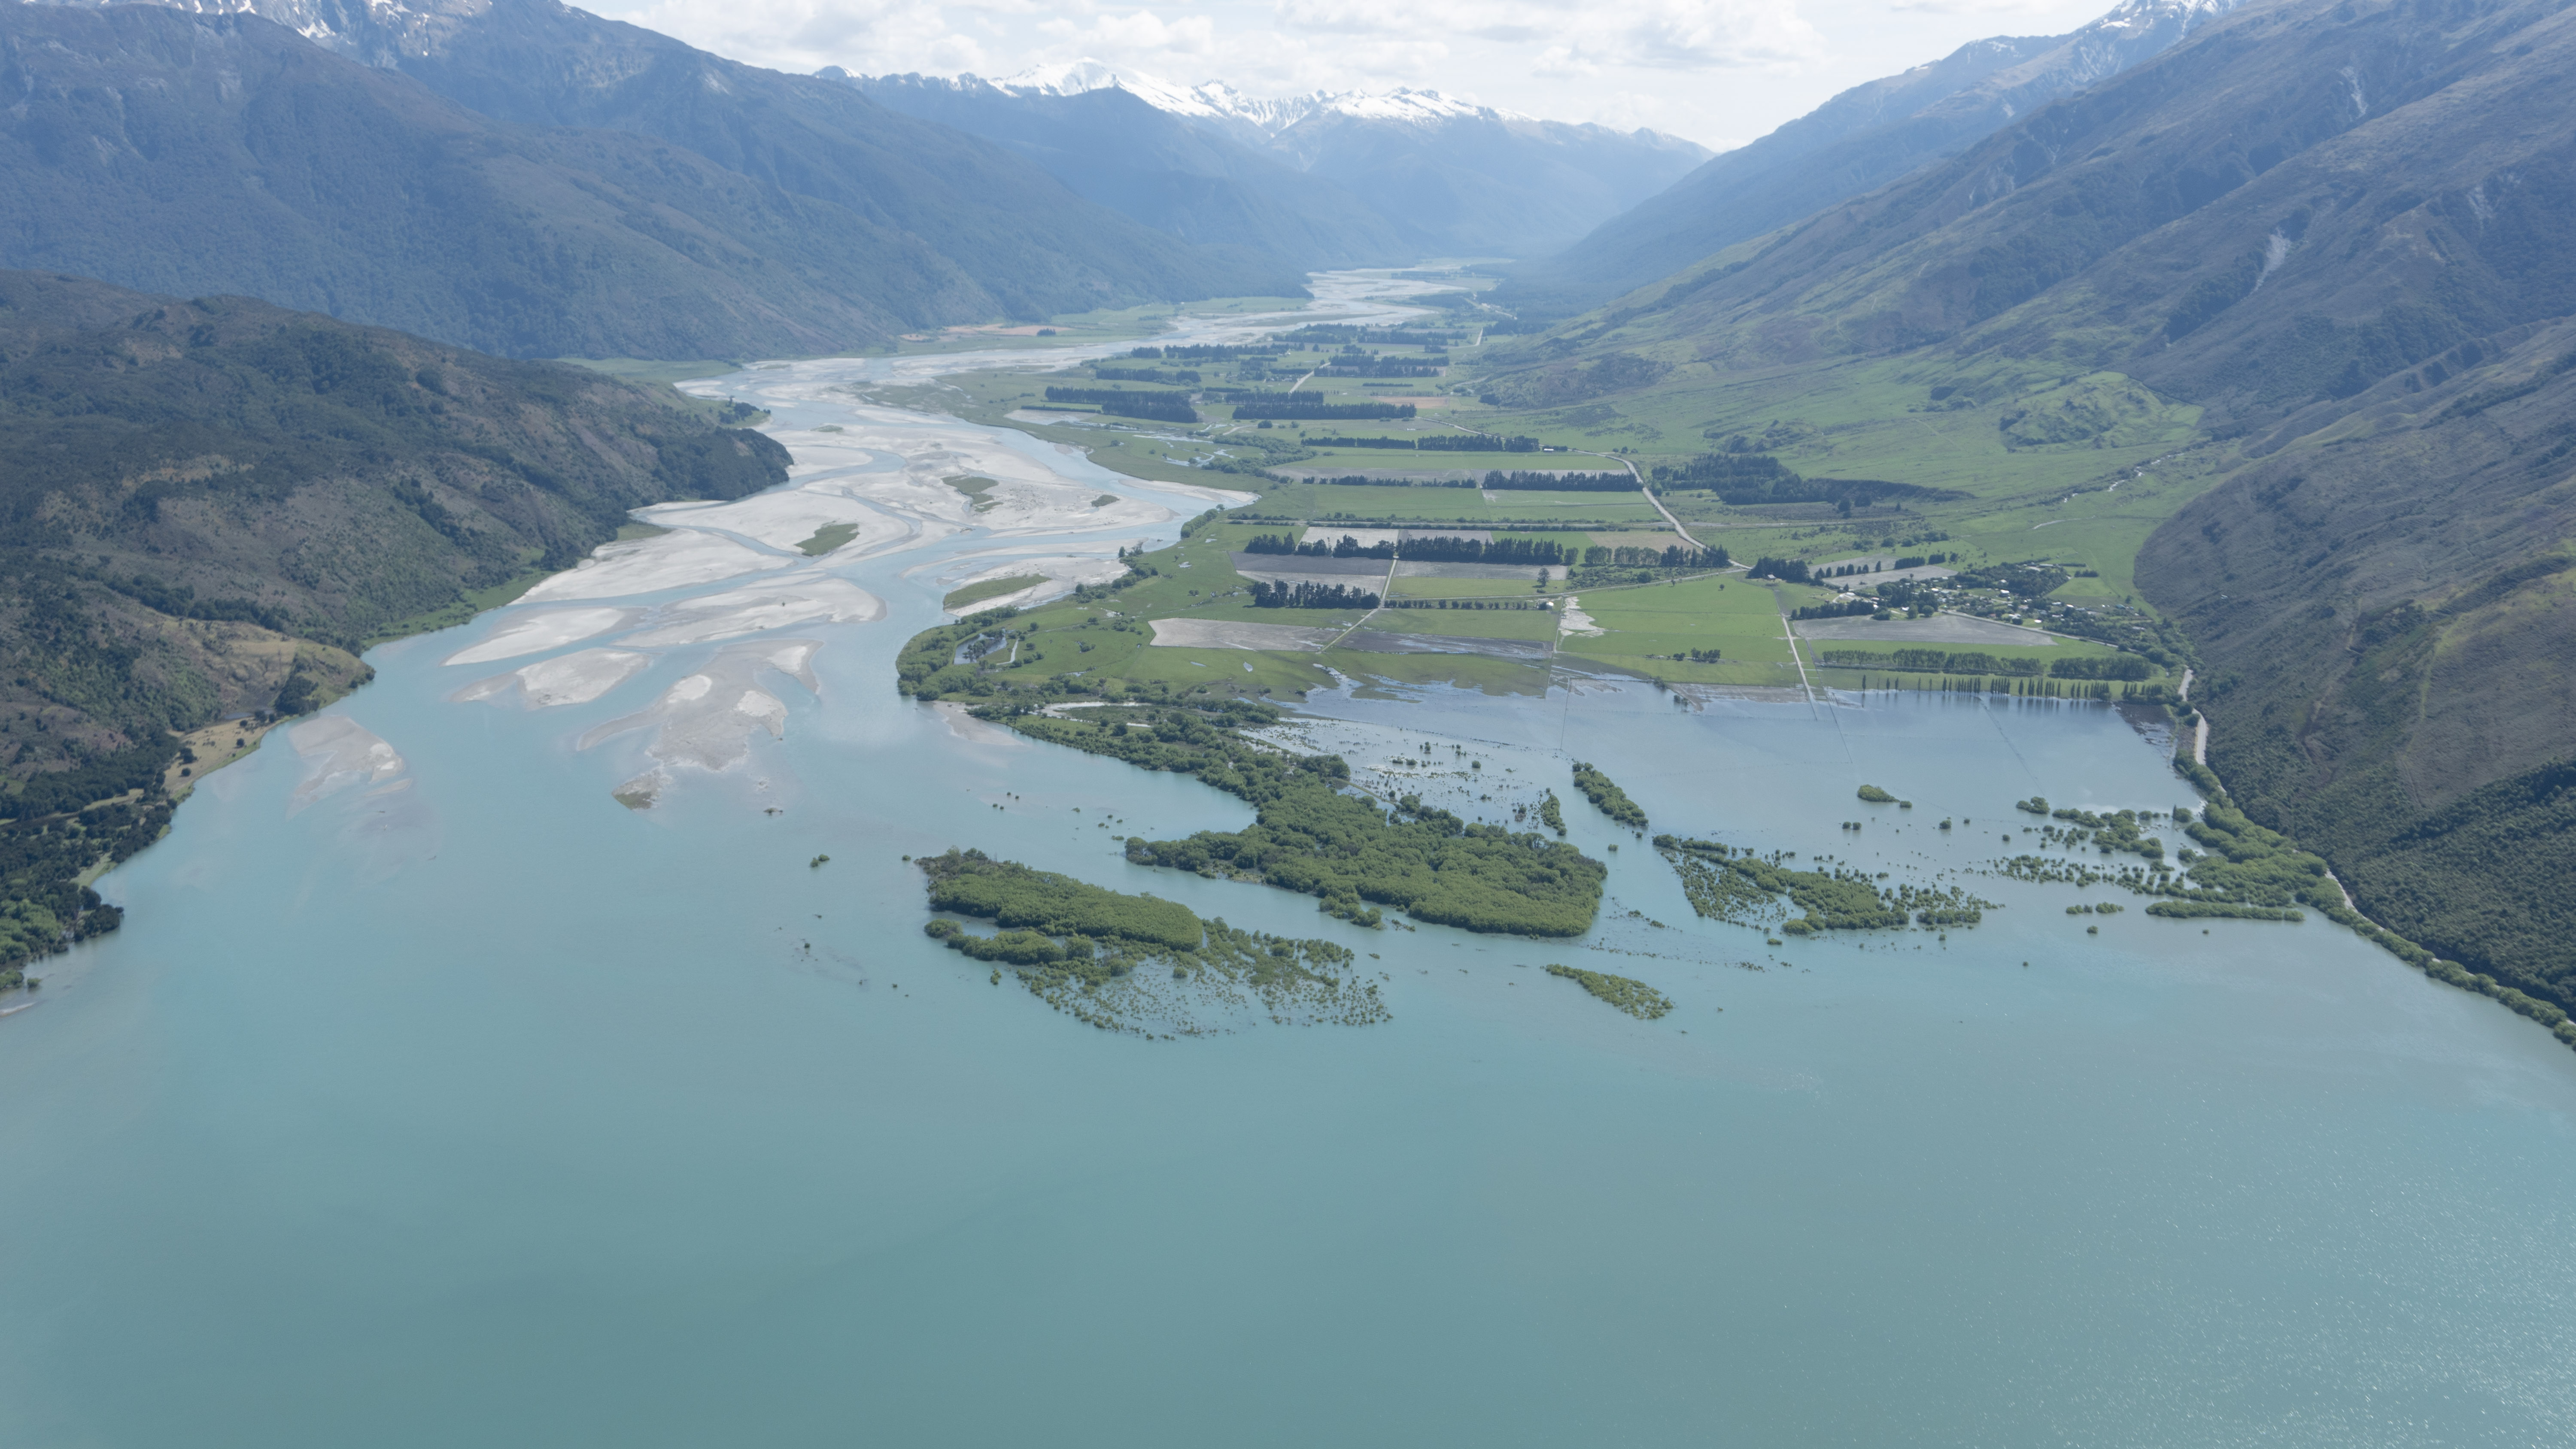 The inflow of the Makarora River to Lake Wanaka, photographed by ORC staff around midday yesterday.